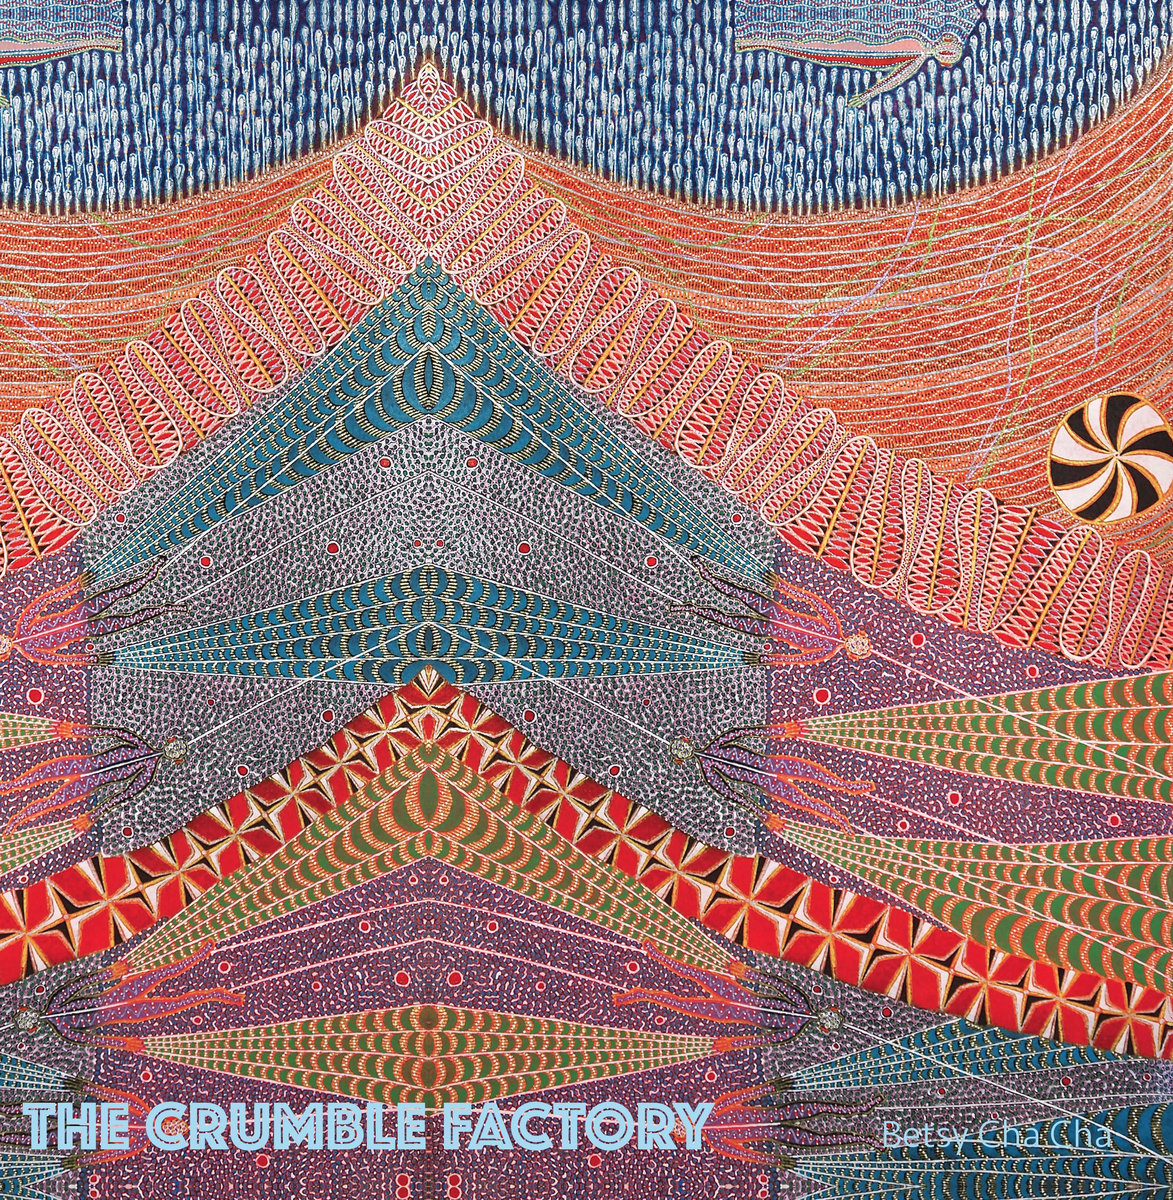 "THE CRUMBLE FACTORY ""Betsy Cha Cha"" - FR - De Blur aux Pixies"